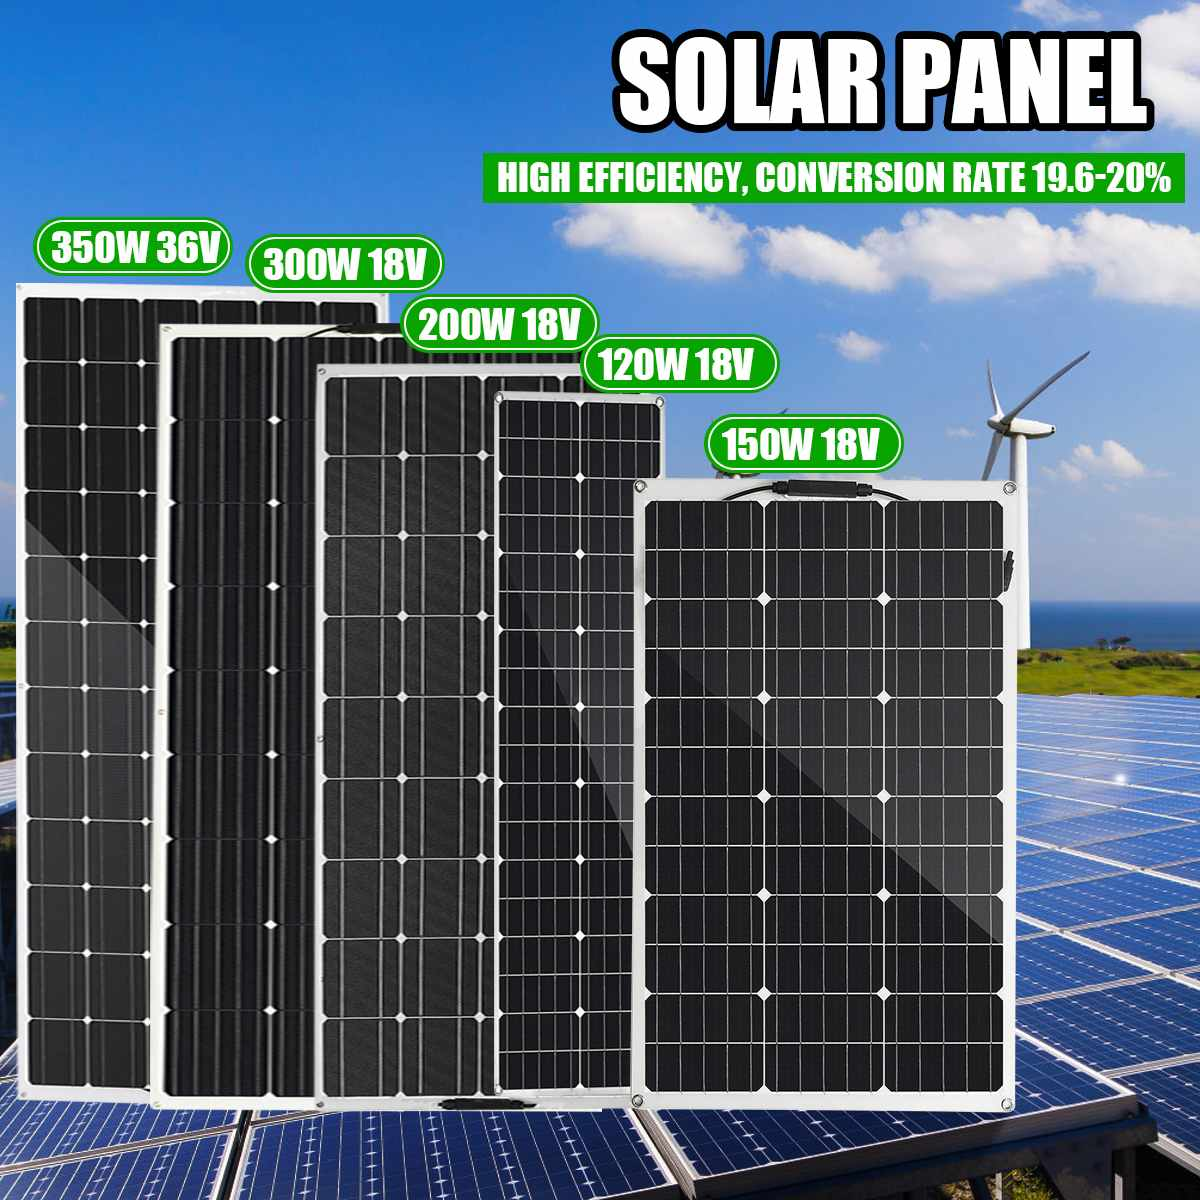 120W/150W/200W/300W Semi-flexible Solar Panel 18V 36V USB Solar Cell DIY Module Outdoor Connector Battery Charger For RV Boat